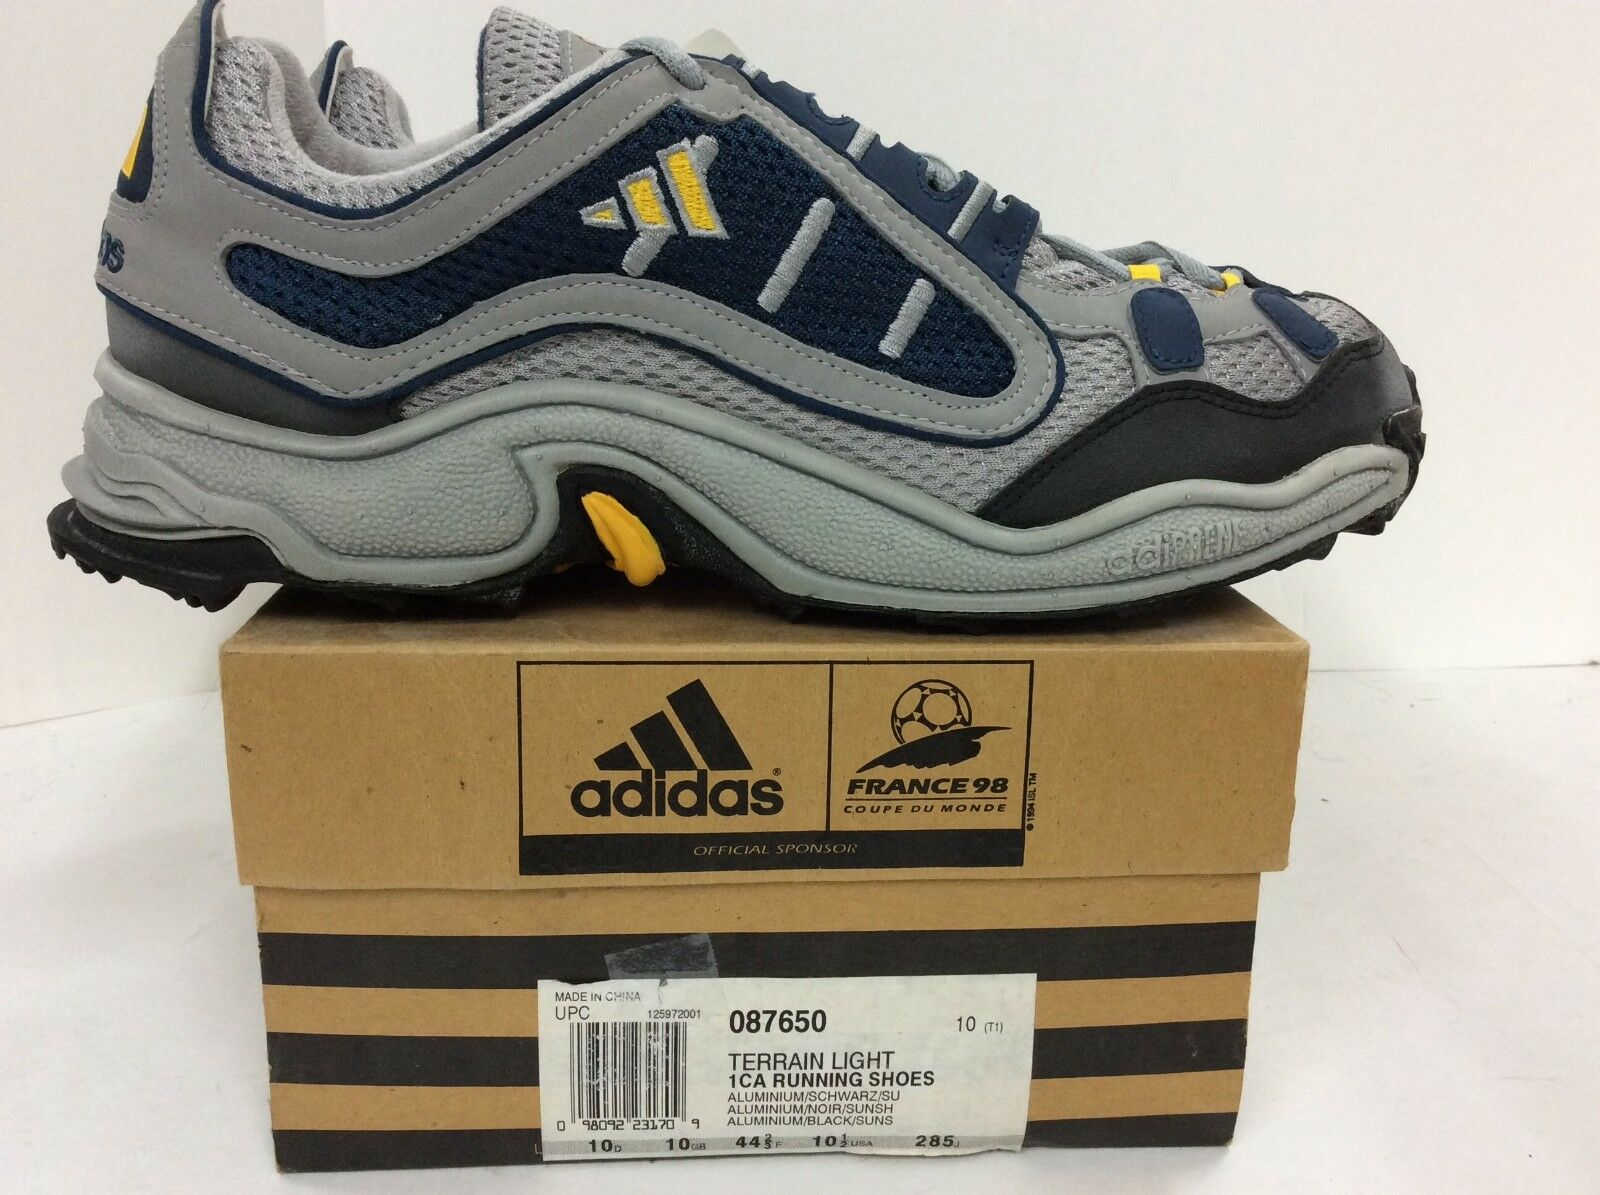 Adidas Terrain Light Running Shoes size 10.5 Style